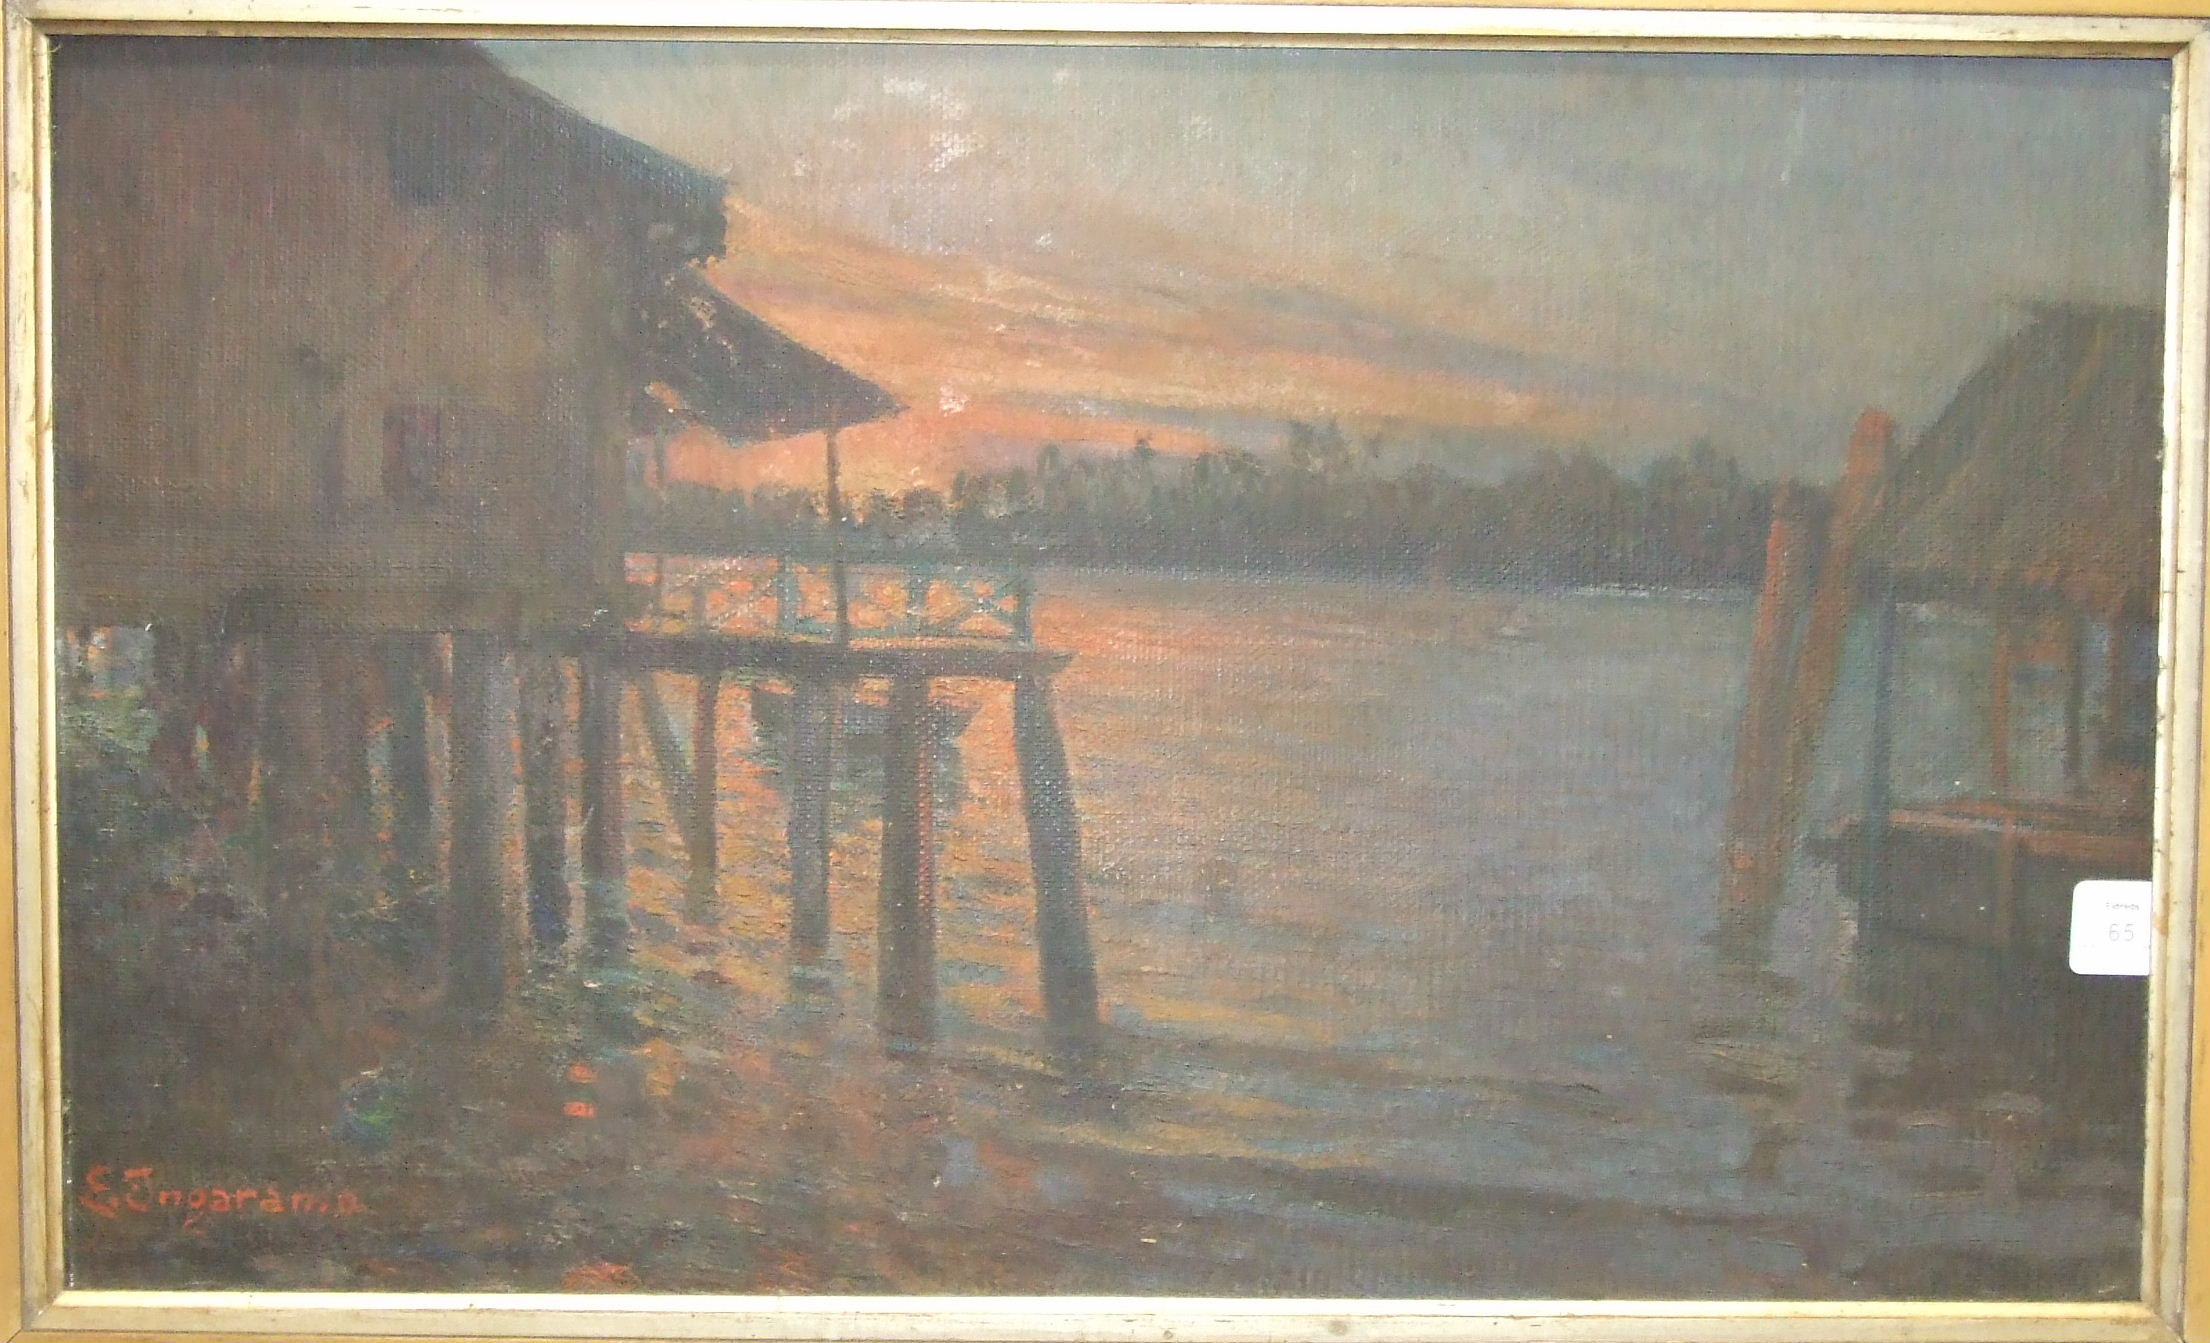 A** Herbert (20th century), 'The Tin Mission', oil on canvas, signed, also inscribed on the - Image 2 of 3